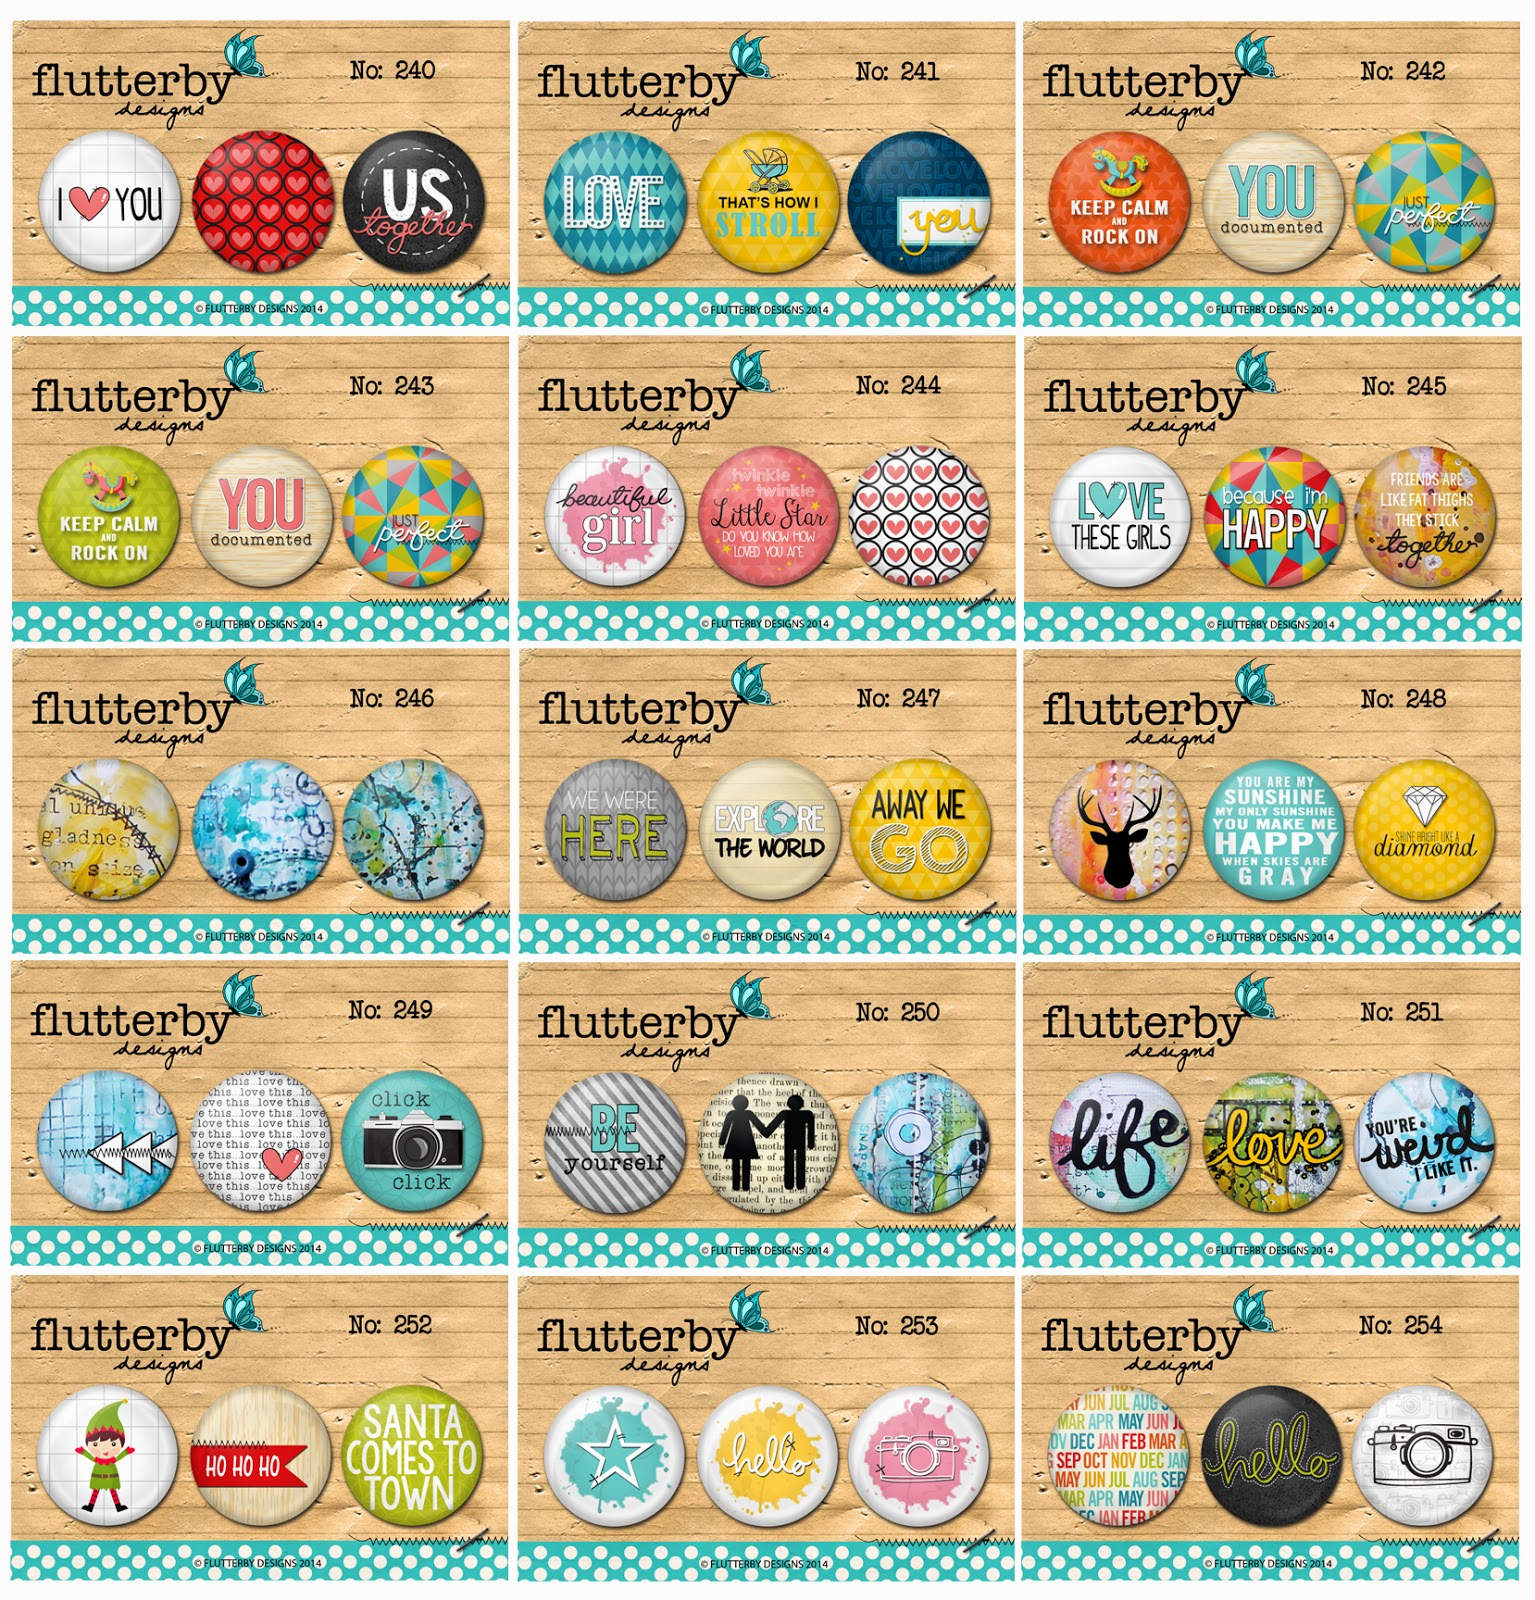 http://flutterbydesigns.bigcartel.com/product/1-flair-buttons-23